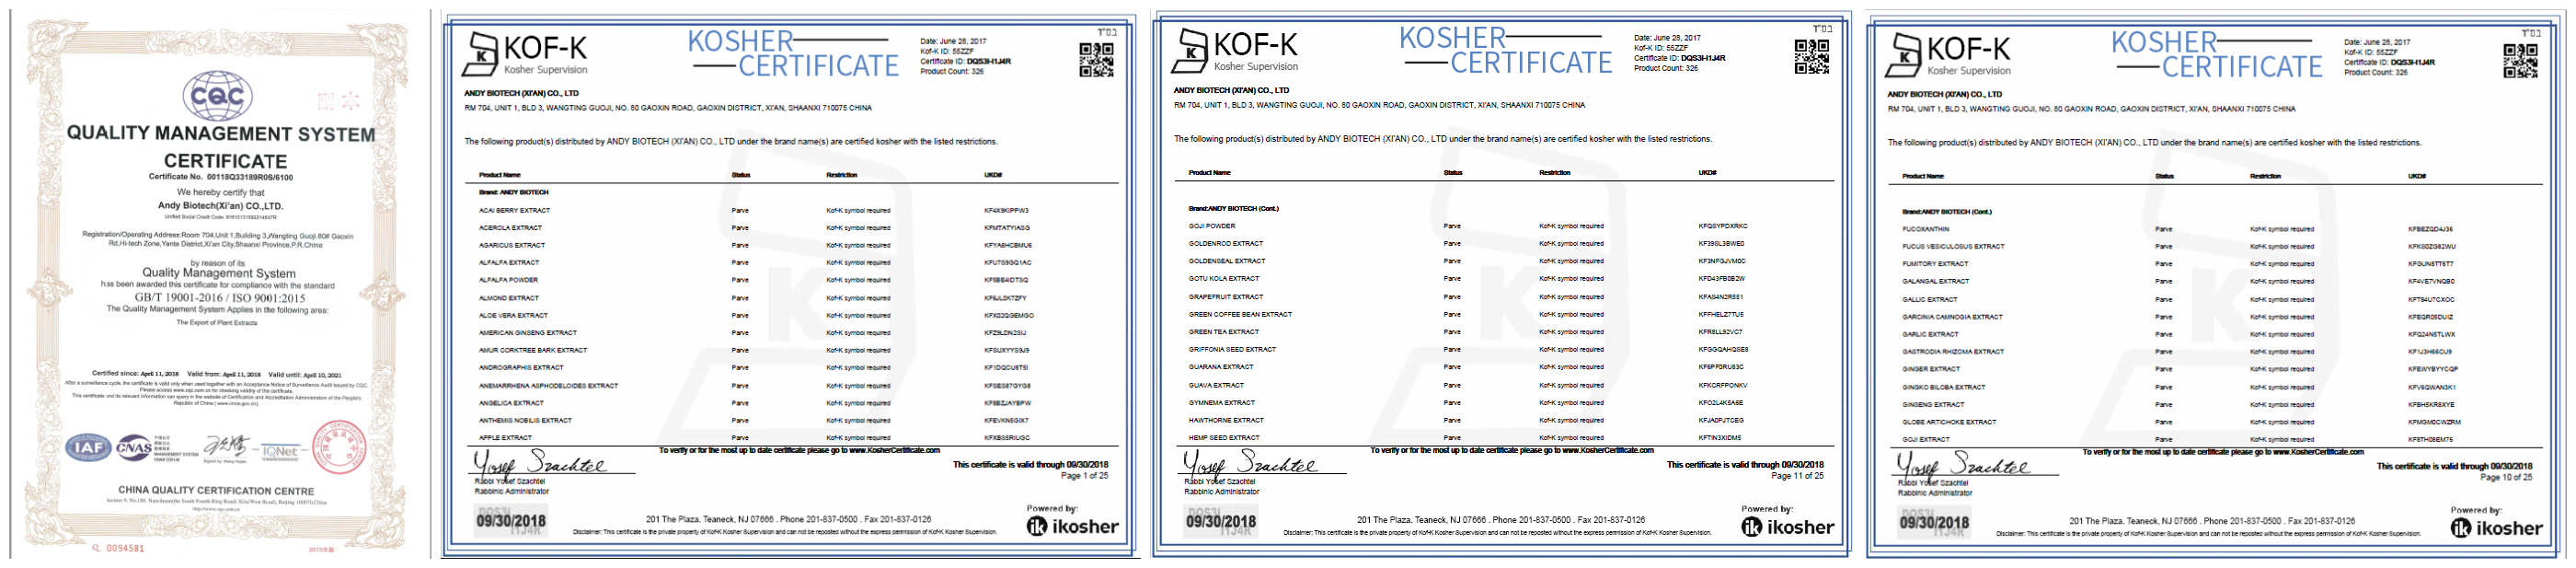 Certificates: ISO, Kosher